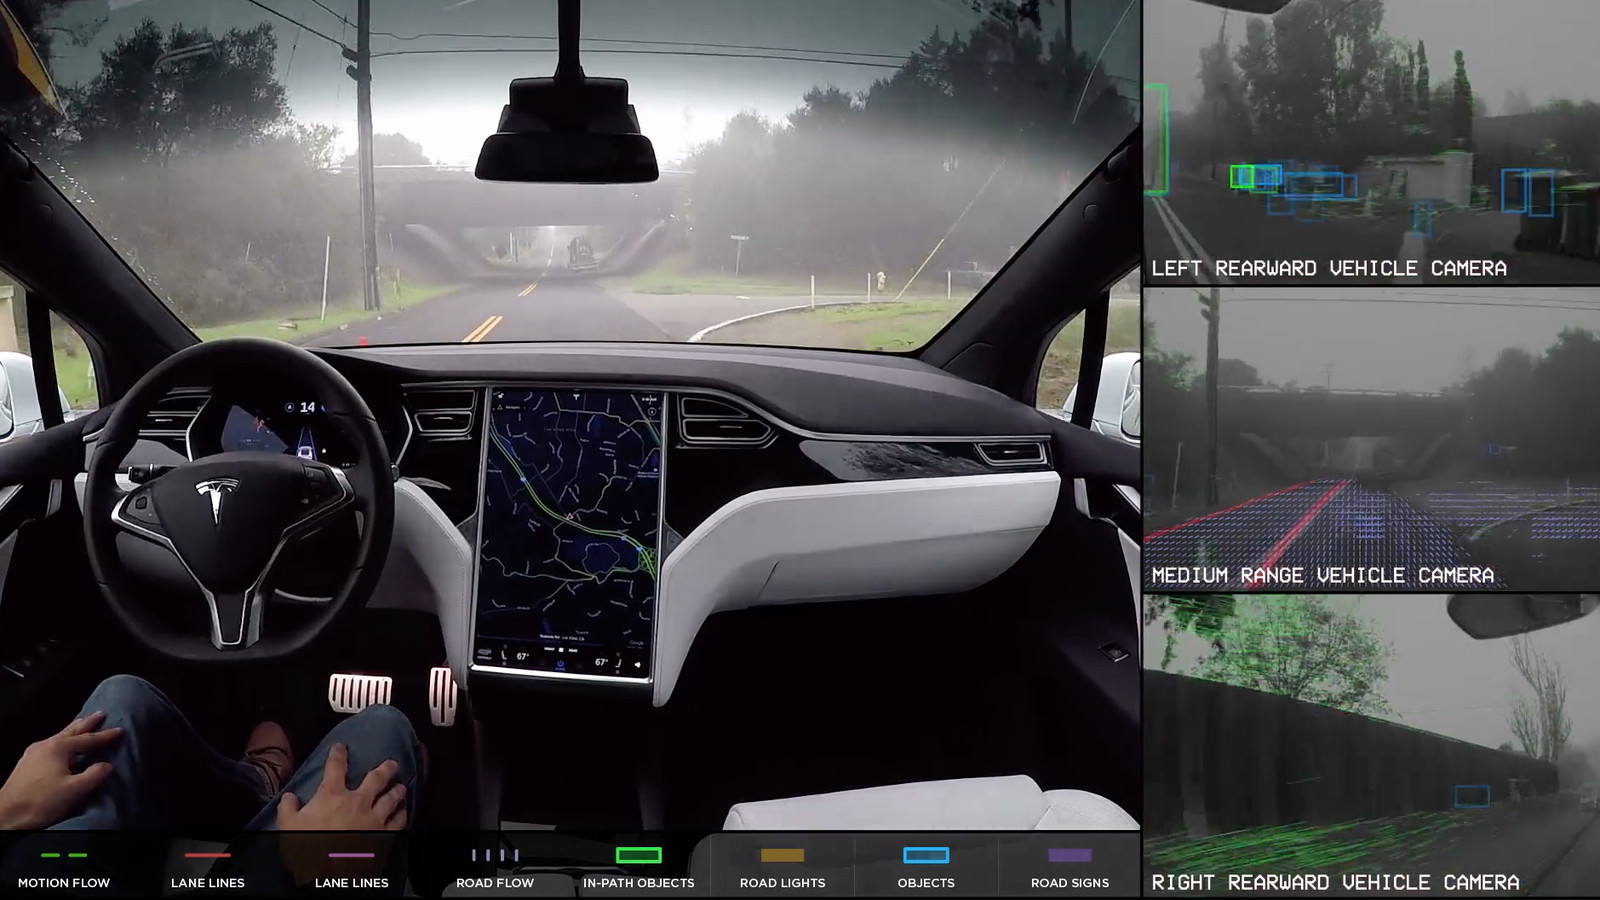 Tesla Shows What Its Self Driving Cars See While On The